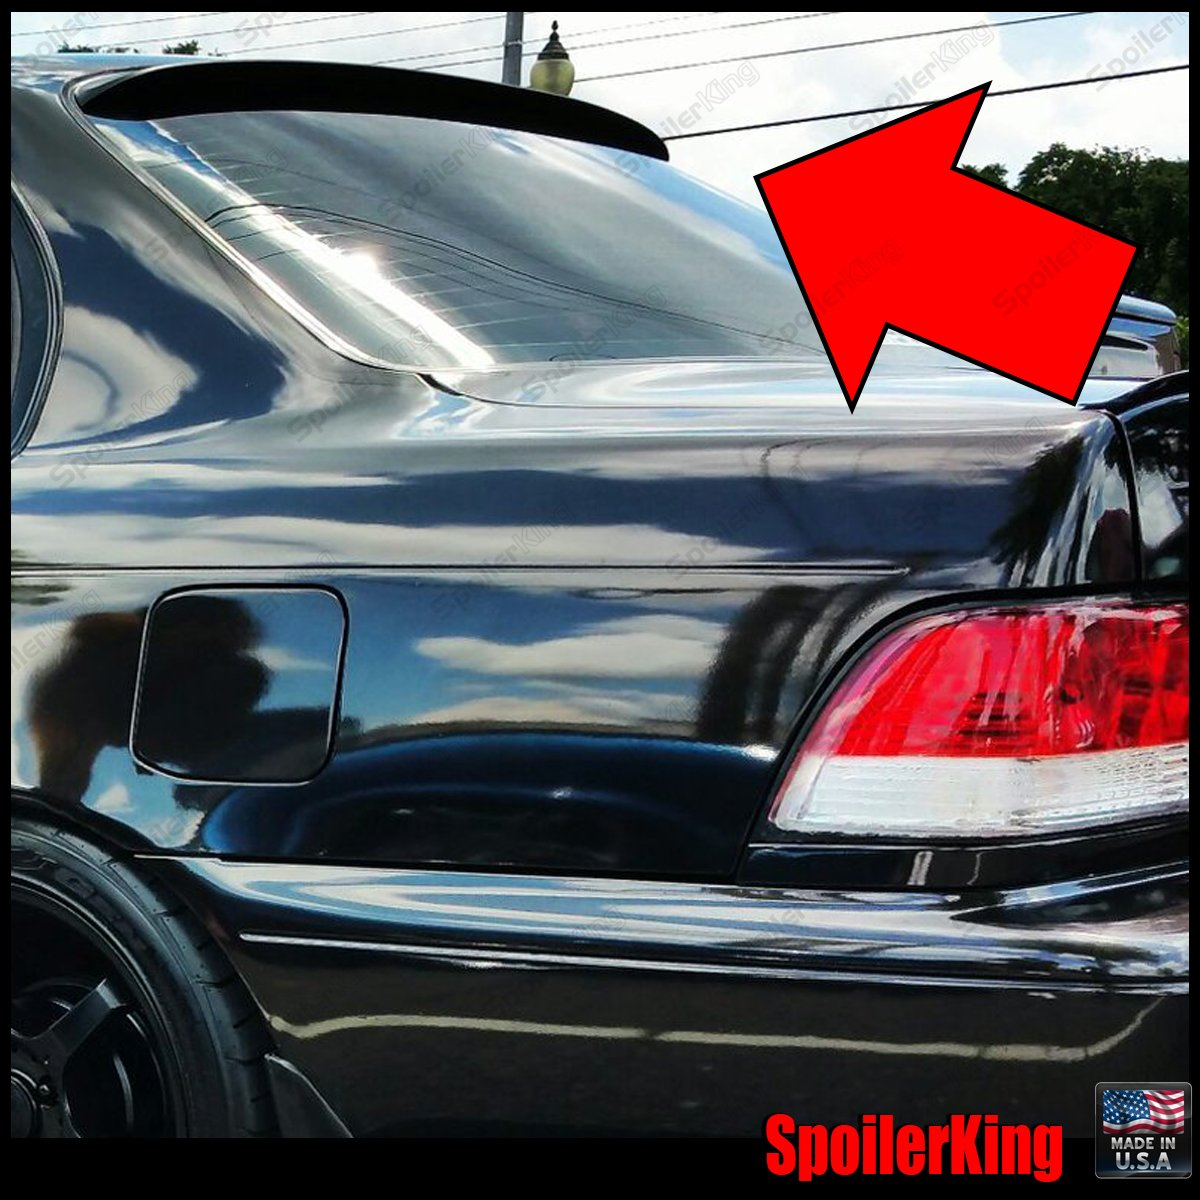 Spoiler King Roof Spoiler (284R) compatible with Toyota Corolla 1993-1997 4dr